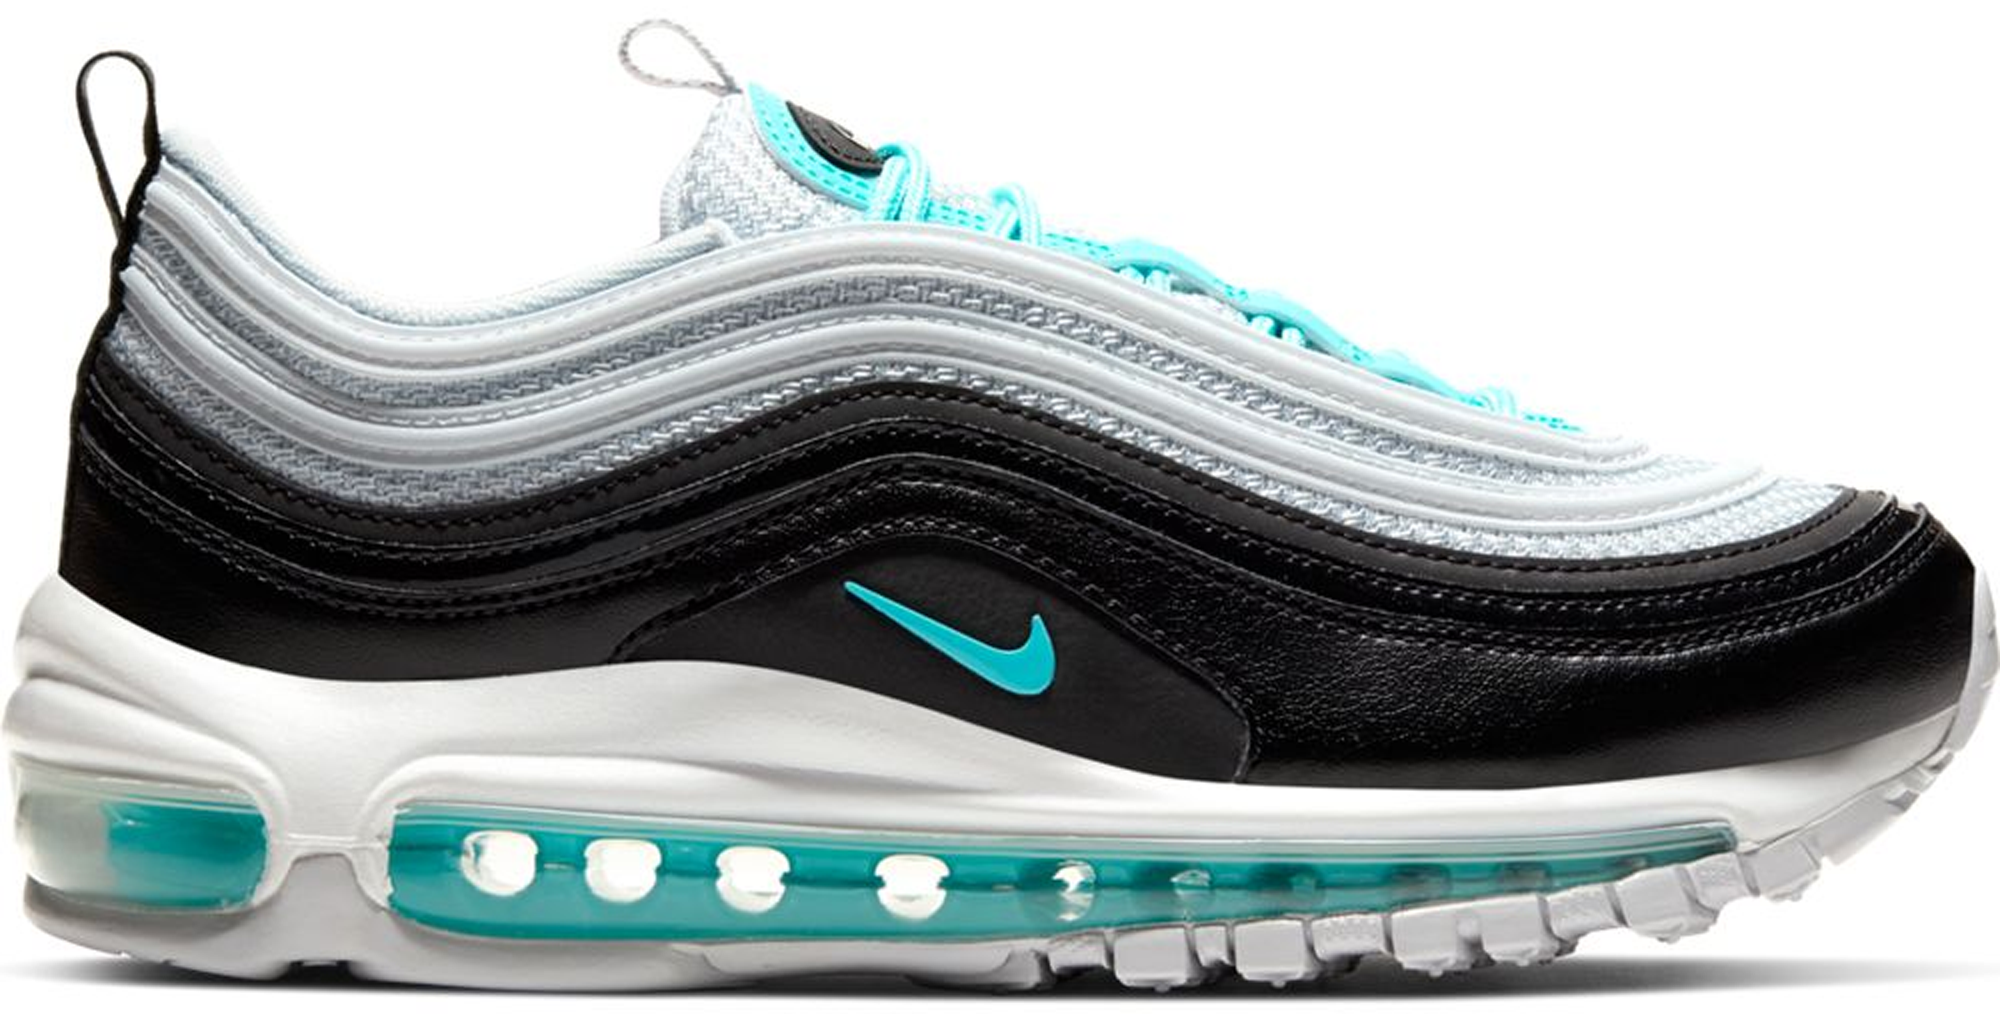 Nike Air Max Shoes , Release Date